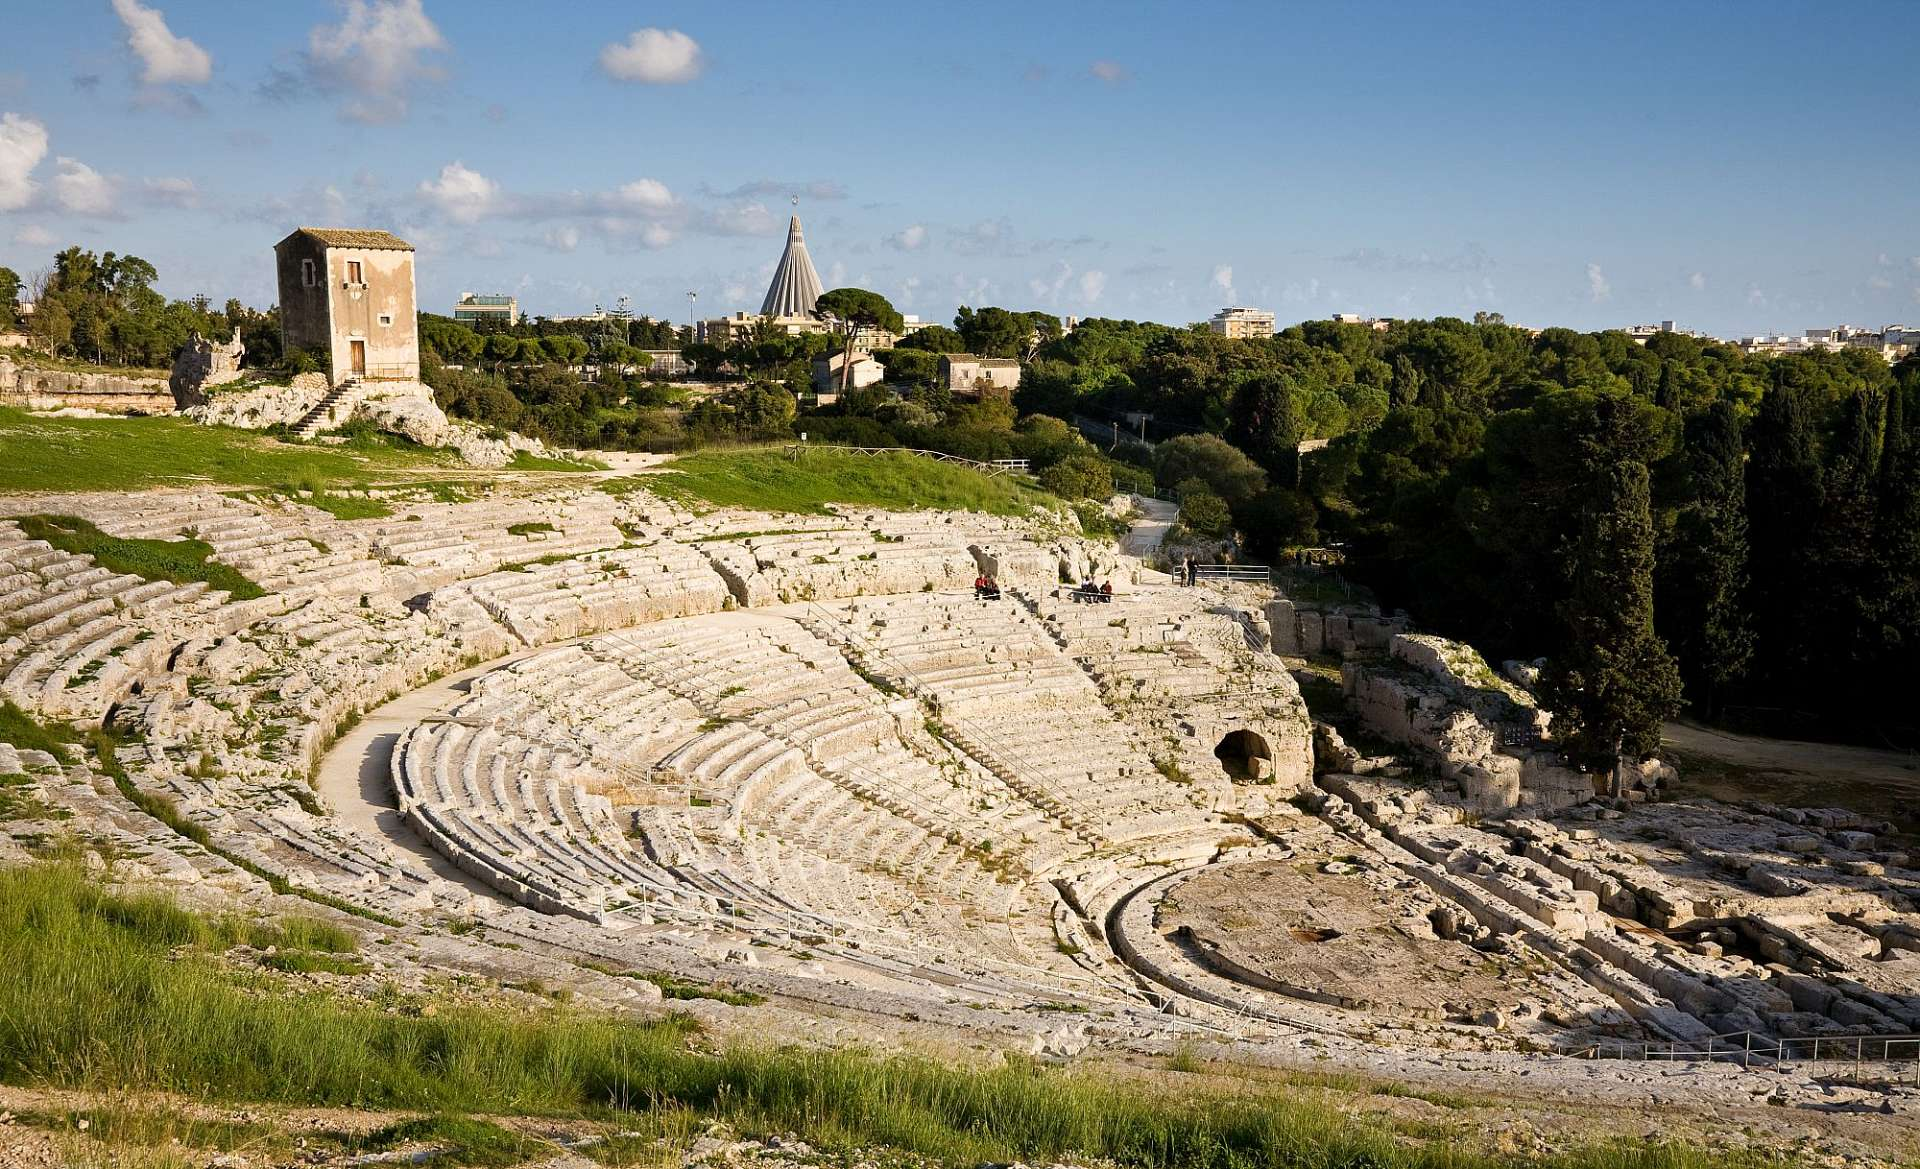 Built to hold 15,000 spectators: Teatro Greco